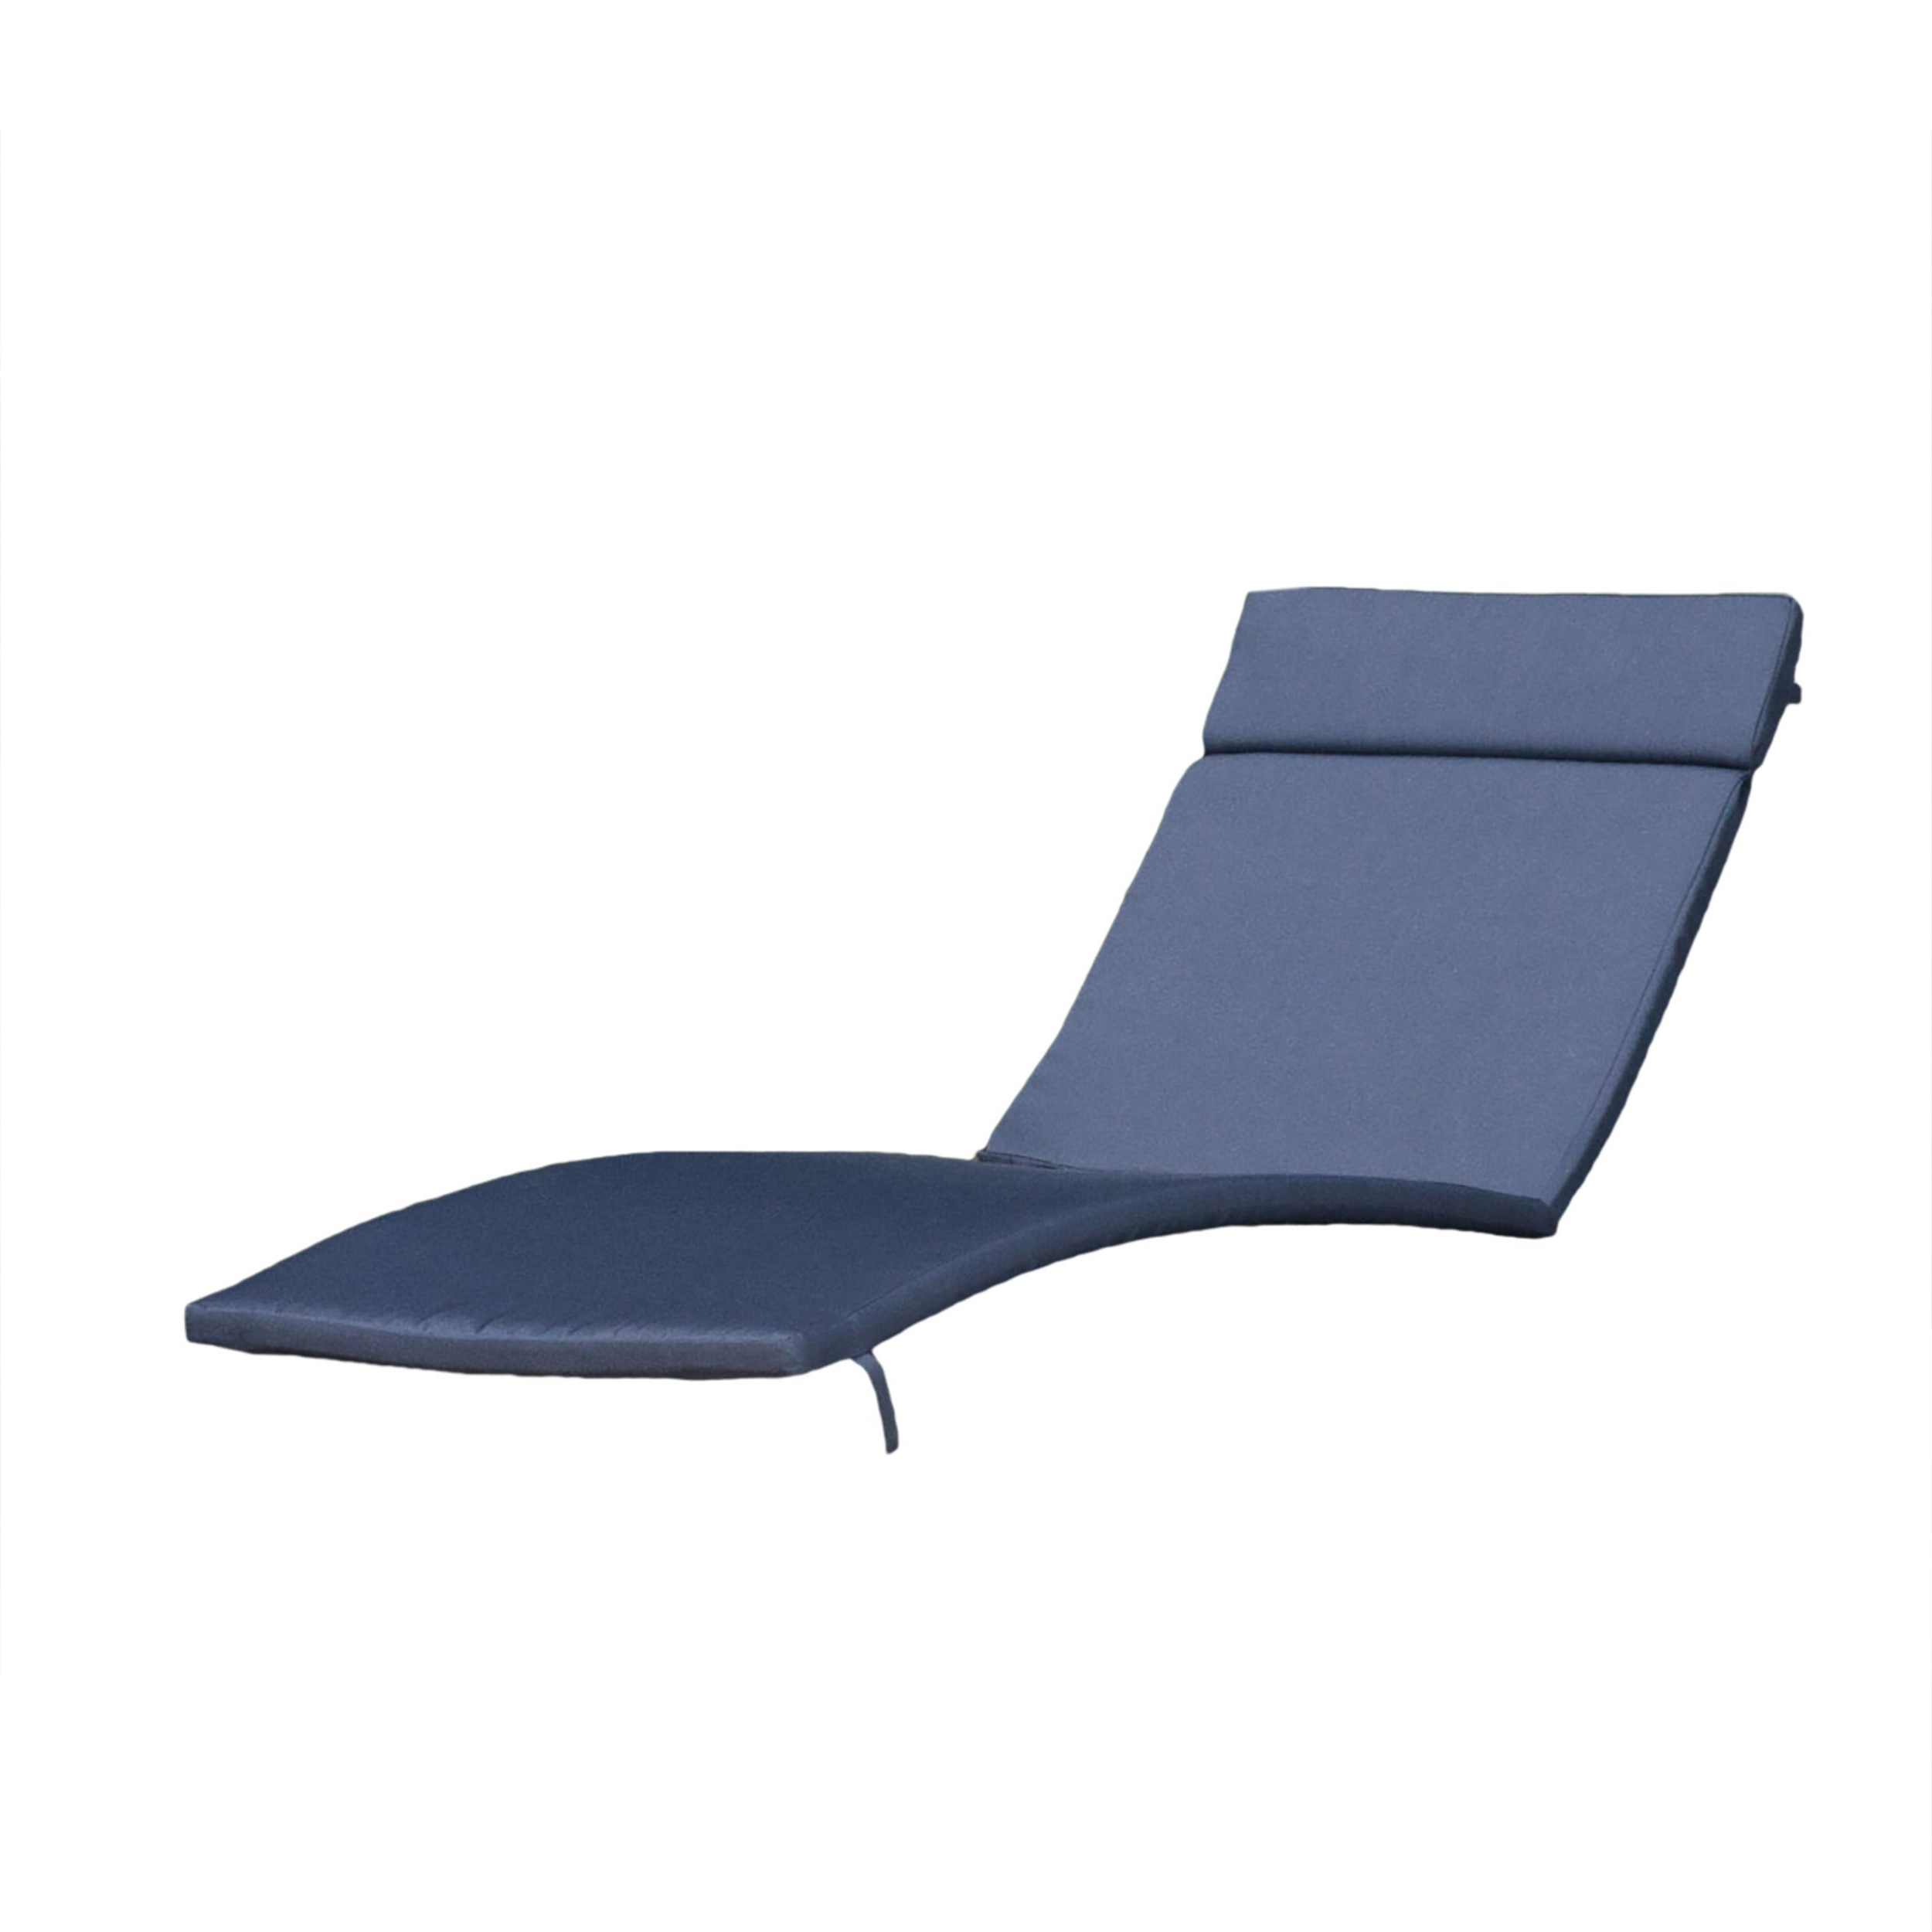 Details About Salem Outdoor Chaise Lounge Cushion (set Of 2) By With Regard To Recent Jamaica Outdoor Chaise Lounges (View 10 of 25)